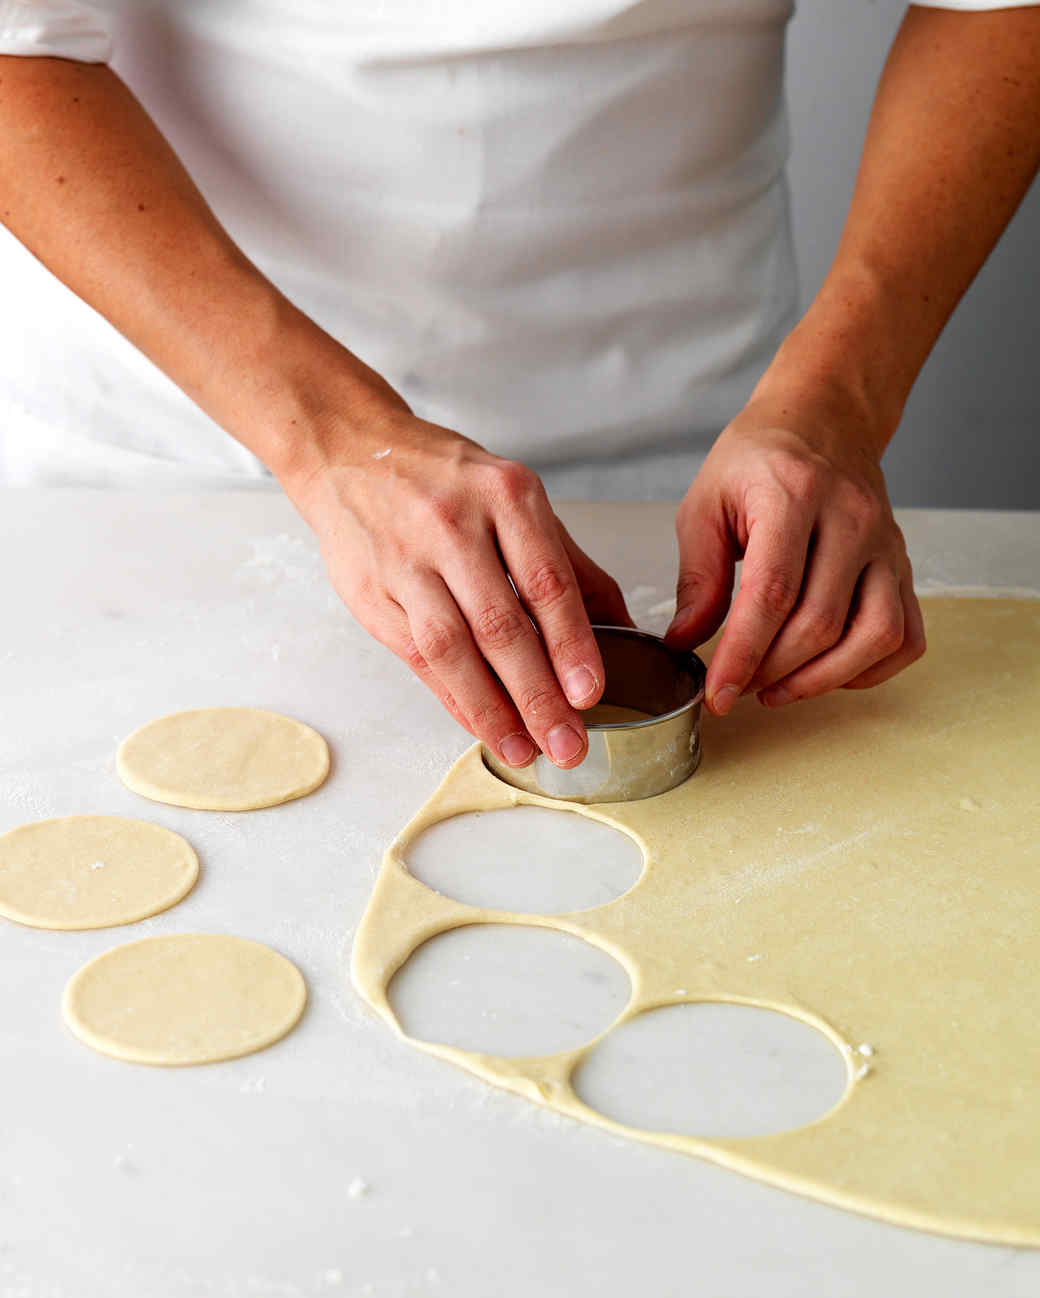 pierogis cutting out